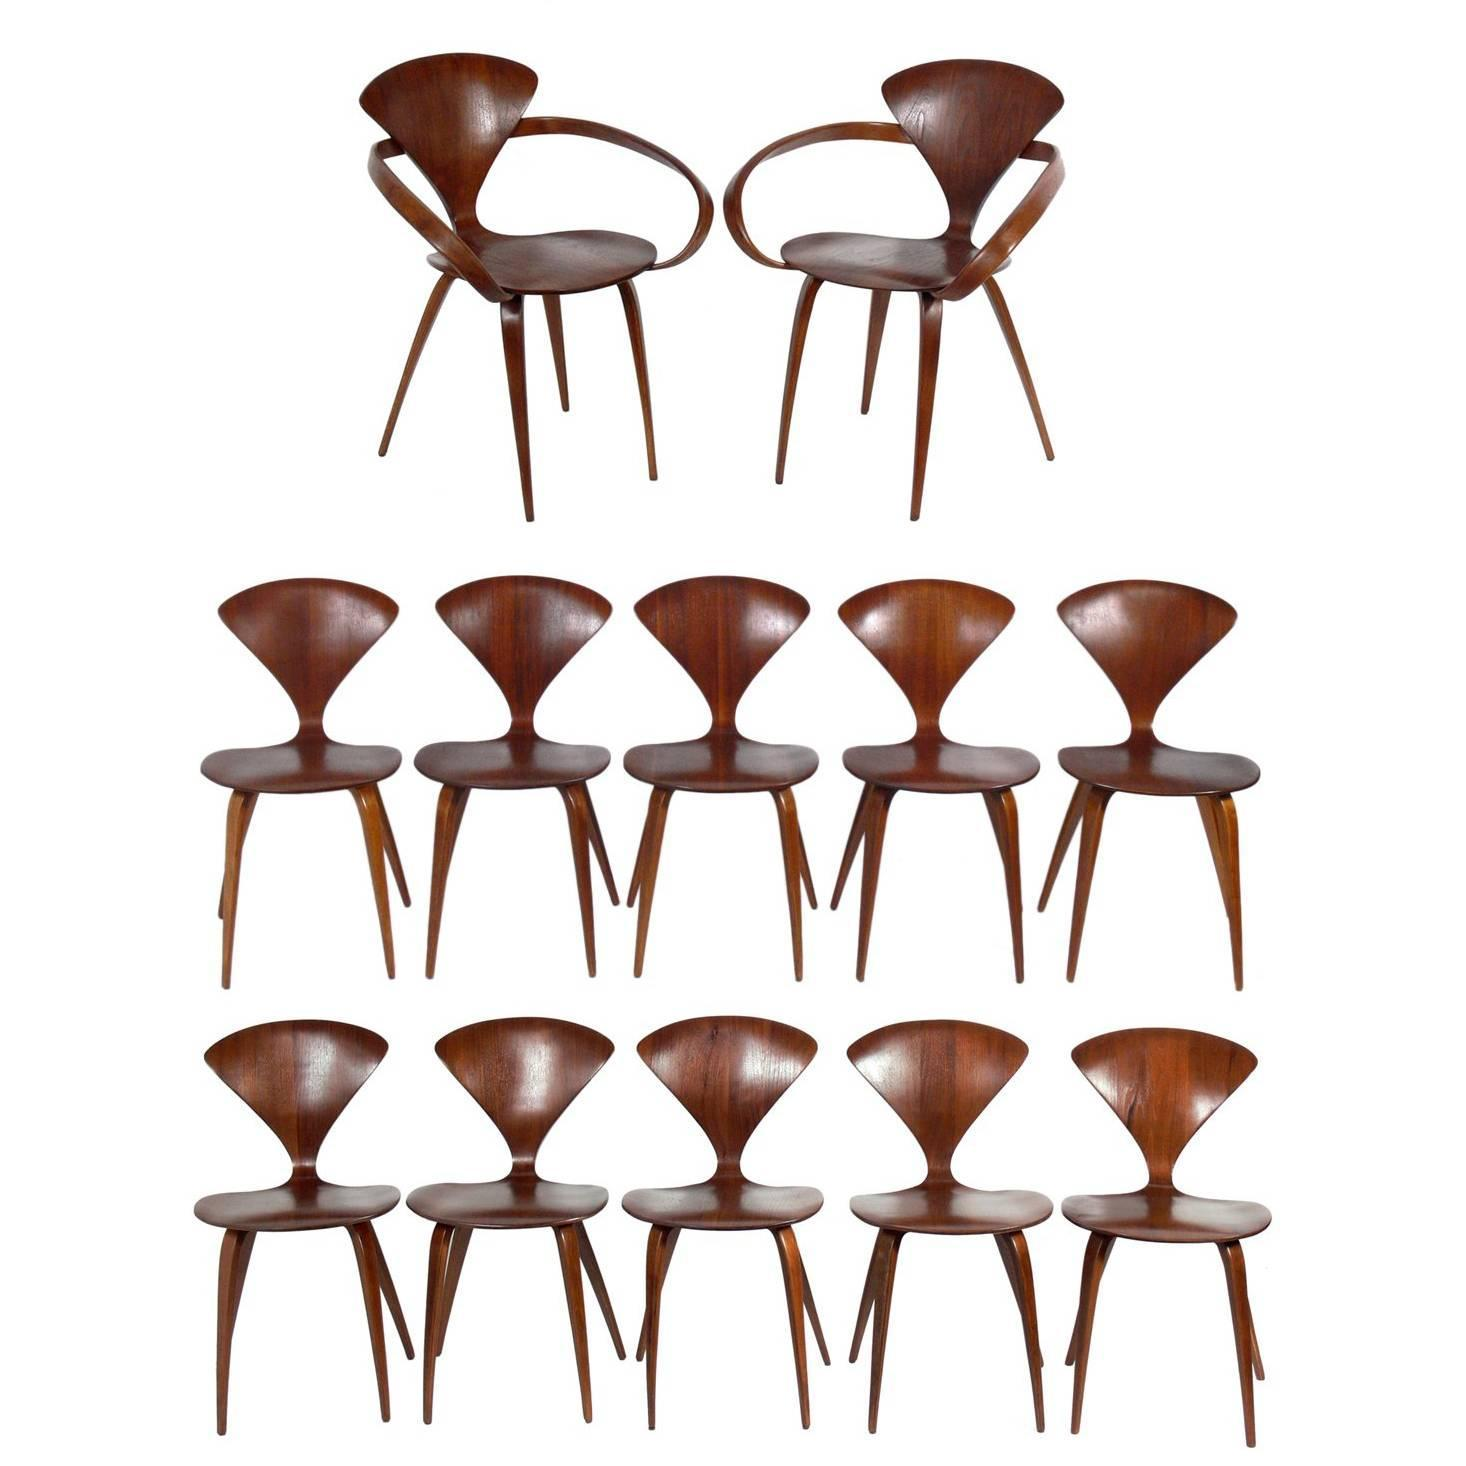 Set Of 12 Sculptural Dining Chairs By Norman Cherner For Plycraft At 1stdibs